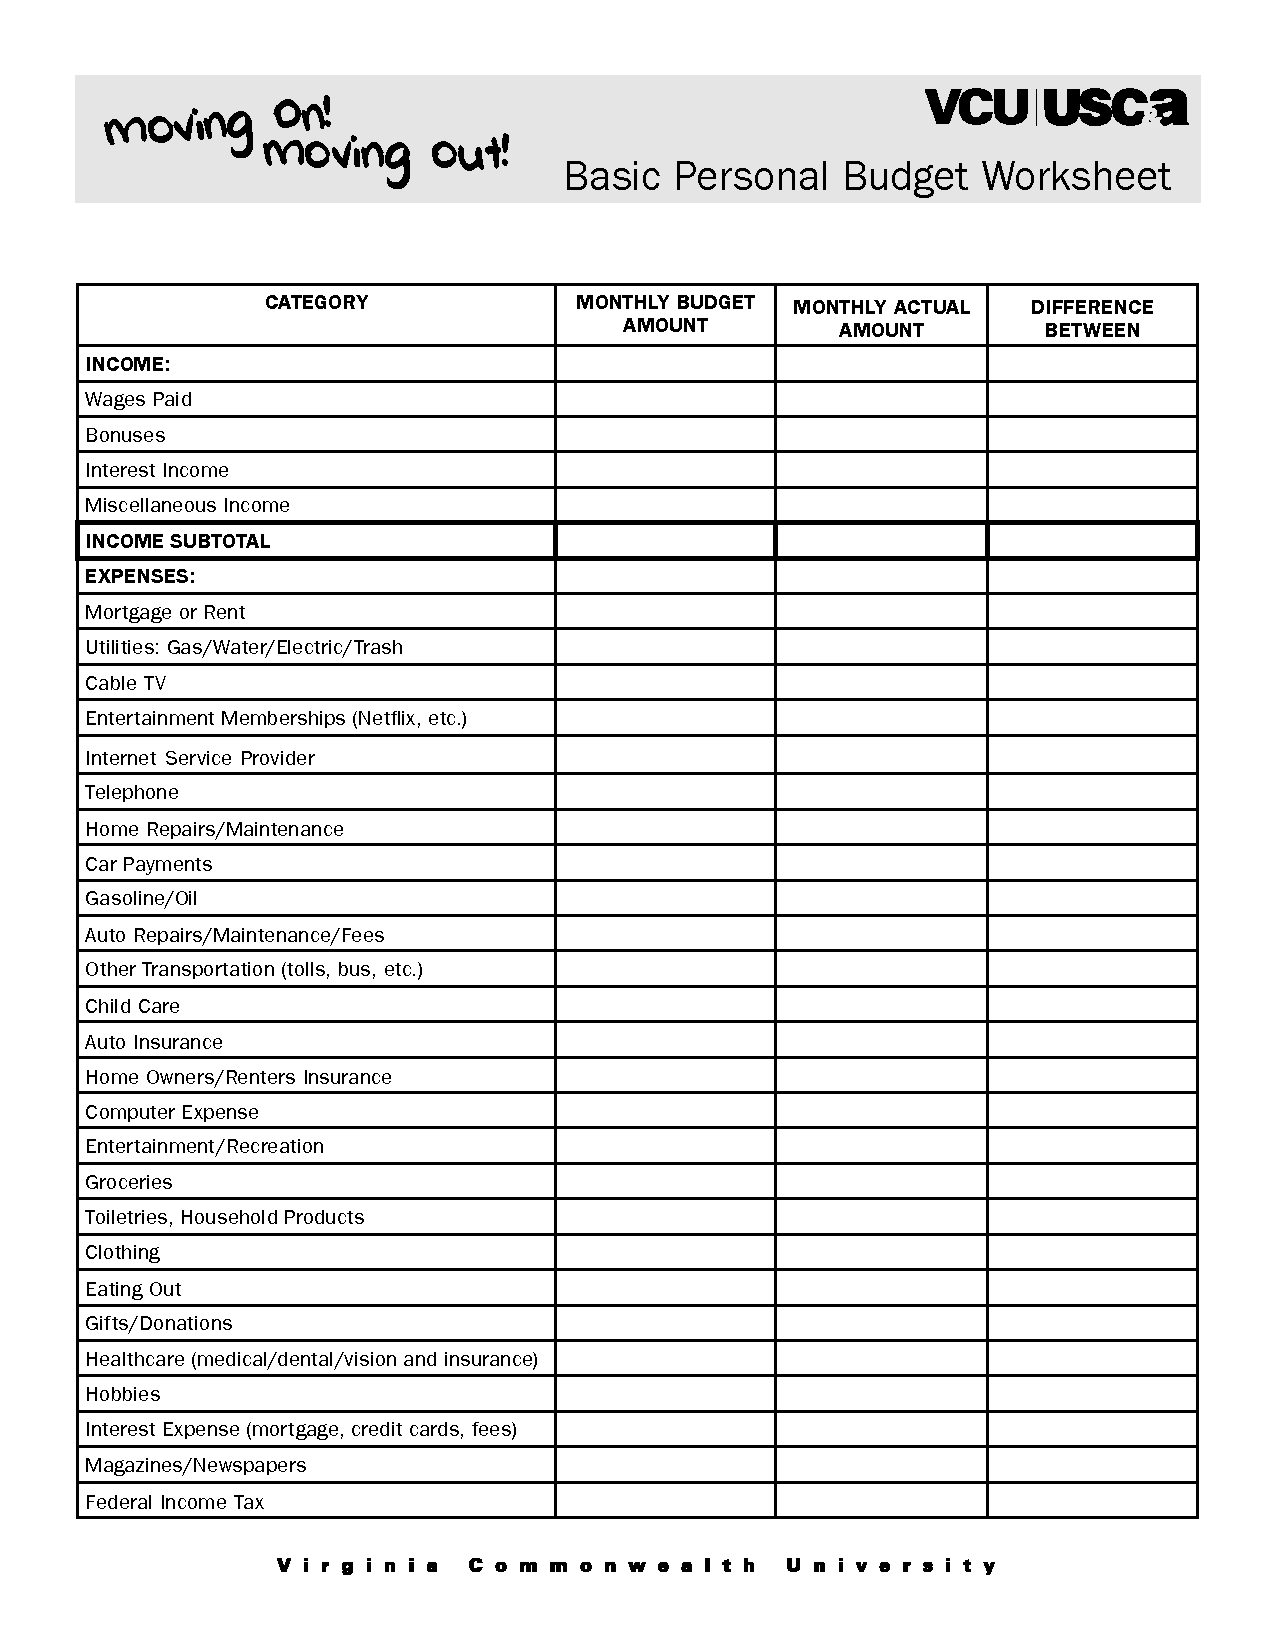 Budget Printable Images Gallery Category Page 4